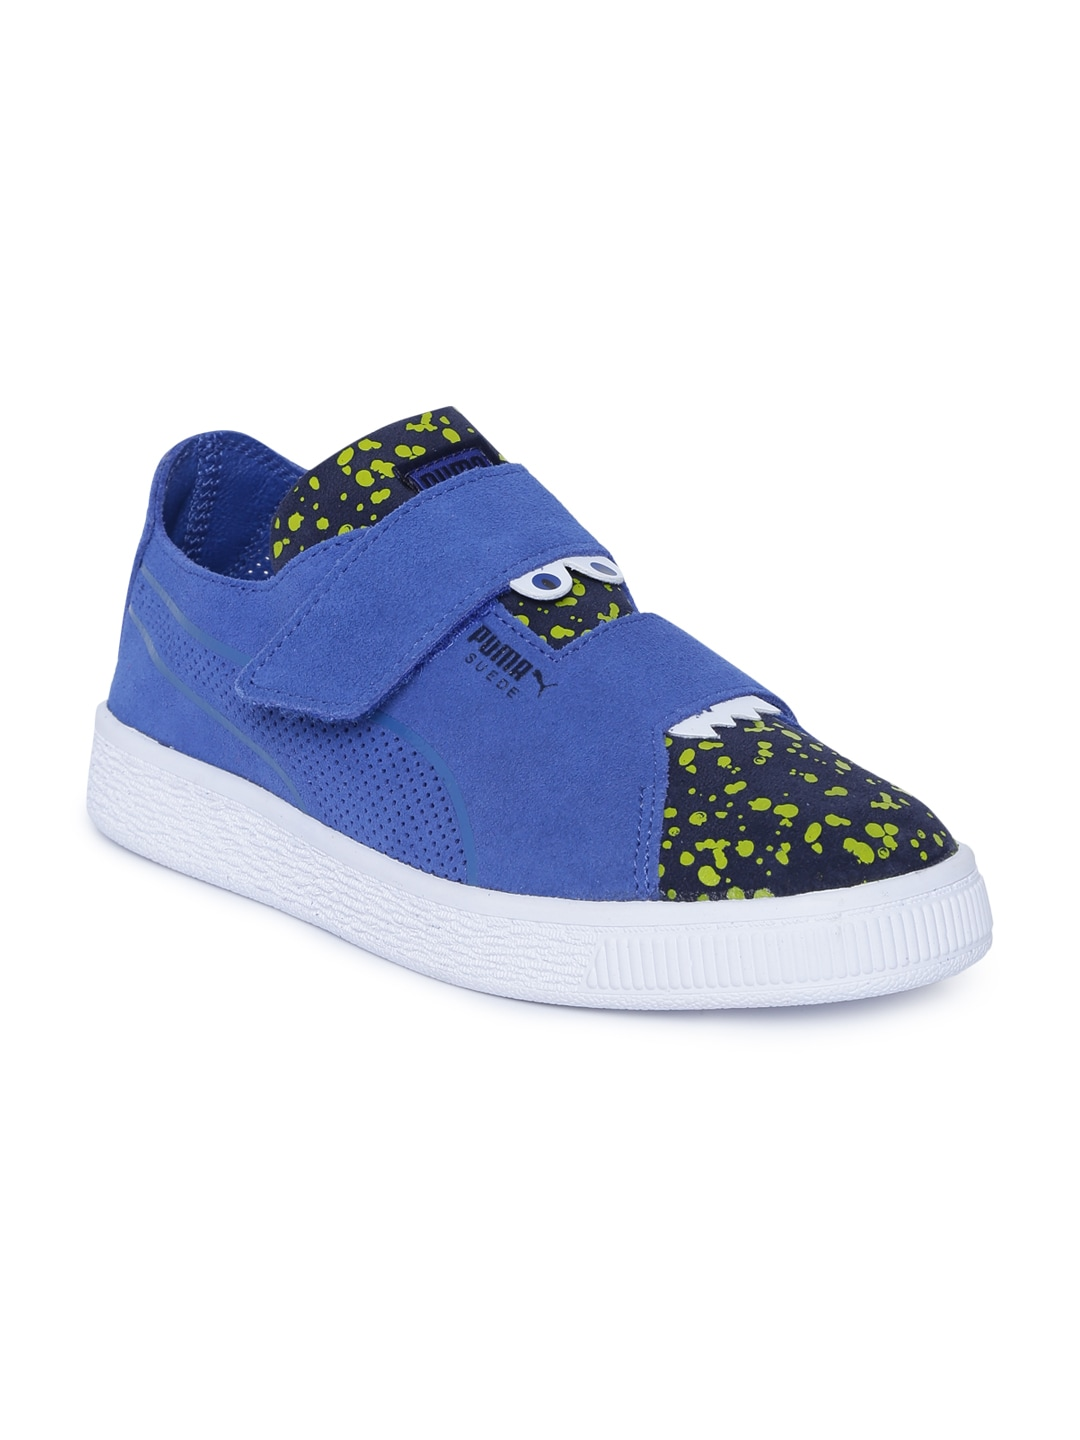 on sale 195e6 5ff96 Kids Shoes - Buy Shoes for Kids Online in India   Myntra